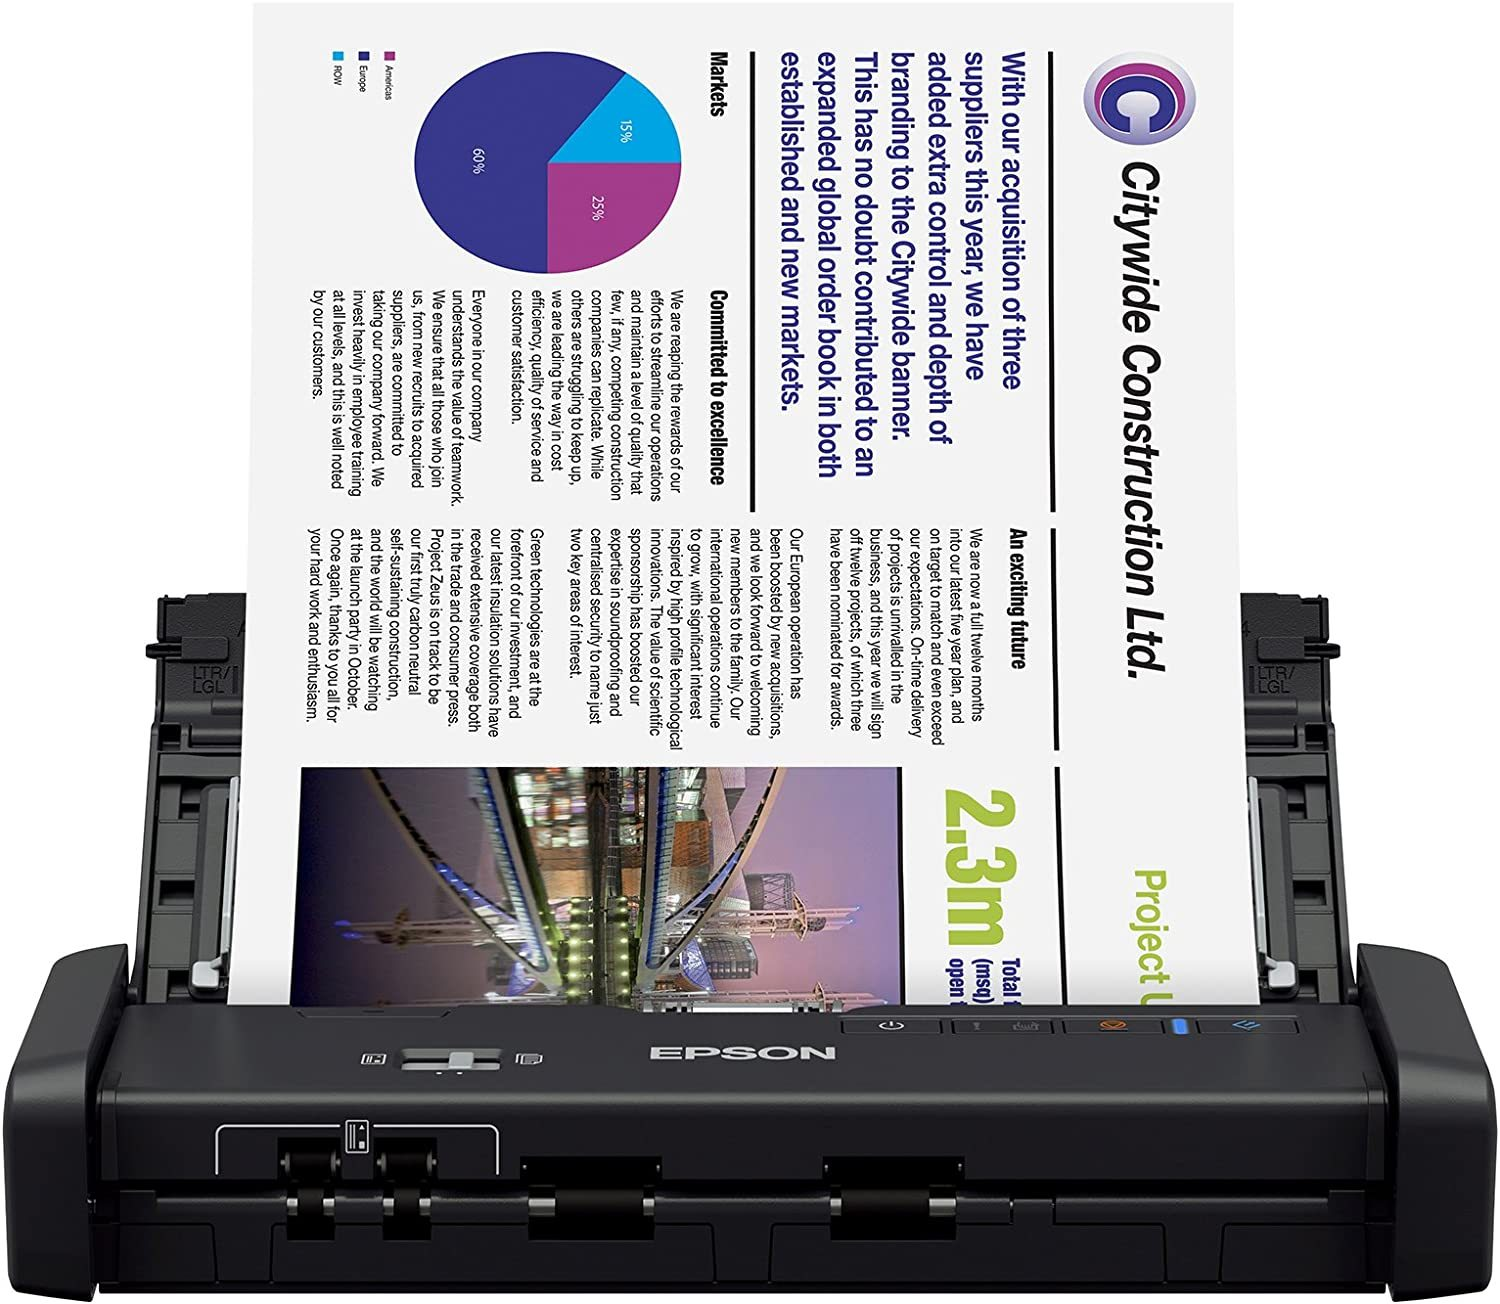 Workforce ES-300W Wireless Color Portable Document Scanner with ADF for PC and Mac, Sheet-fed and Duplex Scanning